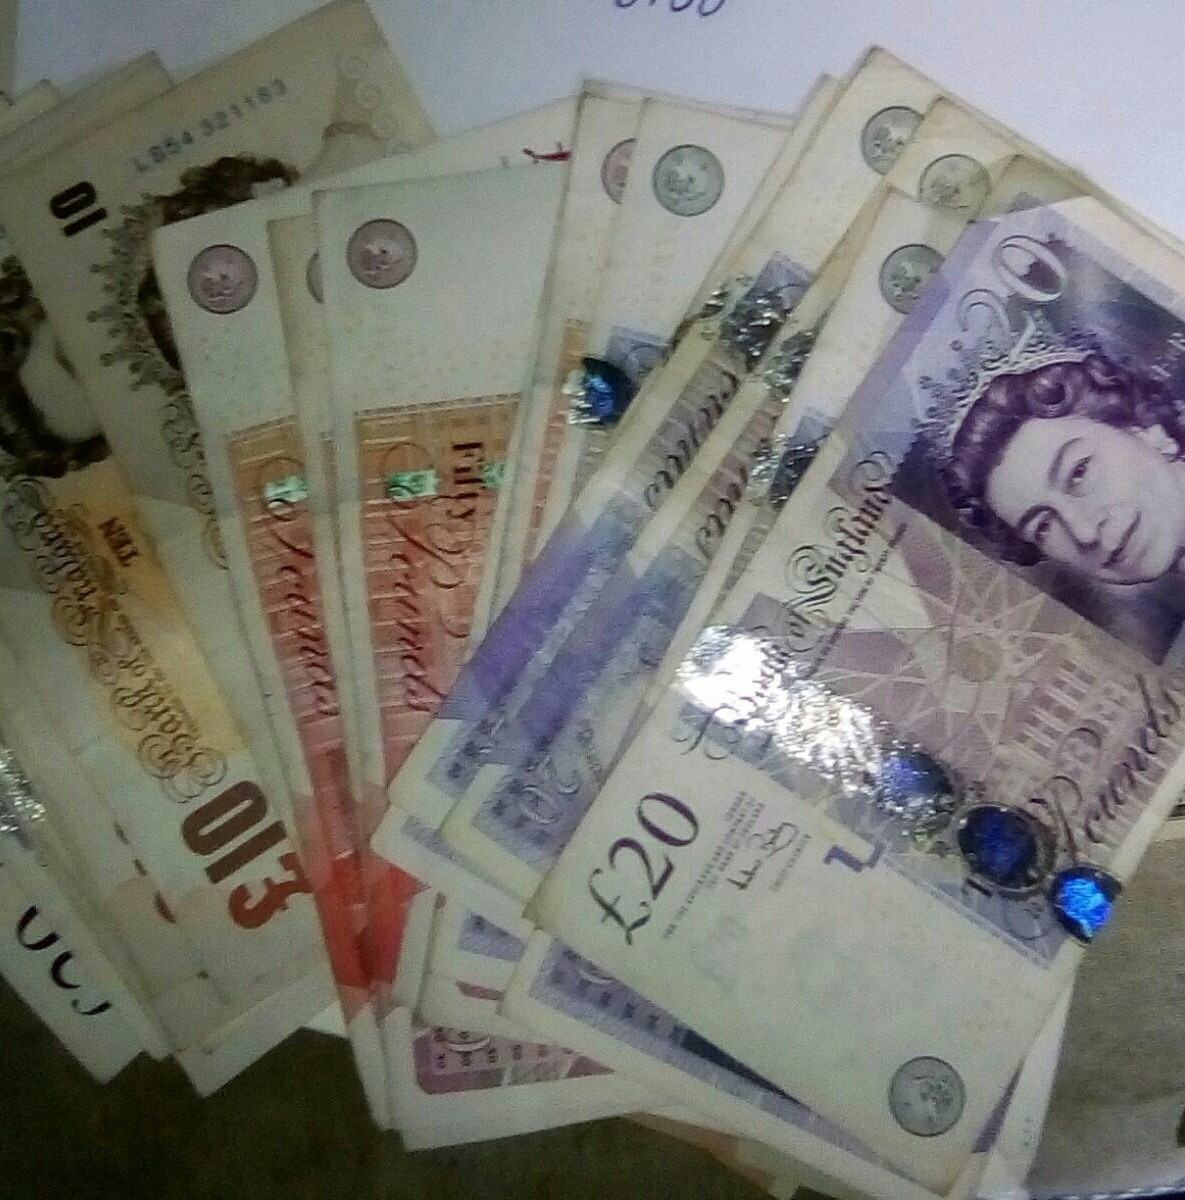 BUY 100% UNDETECTABLE COUNTERFEIT MONEY £,$,€,WHATSAPP: +4915217807365